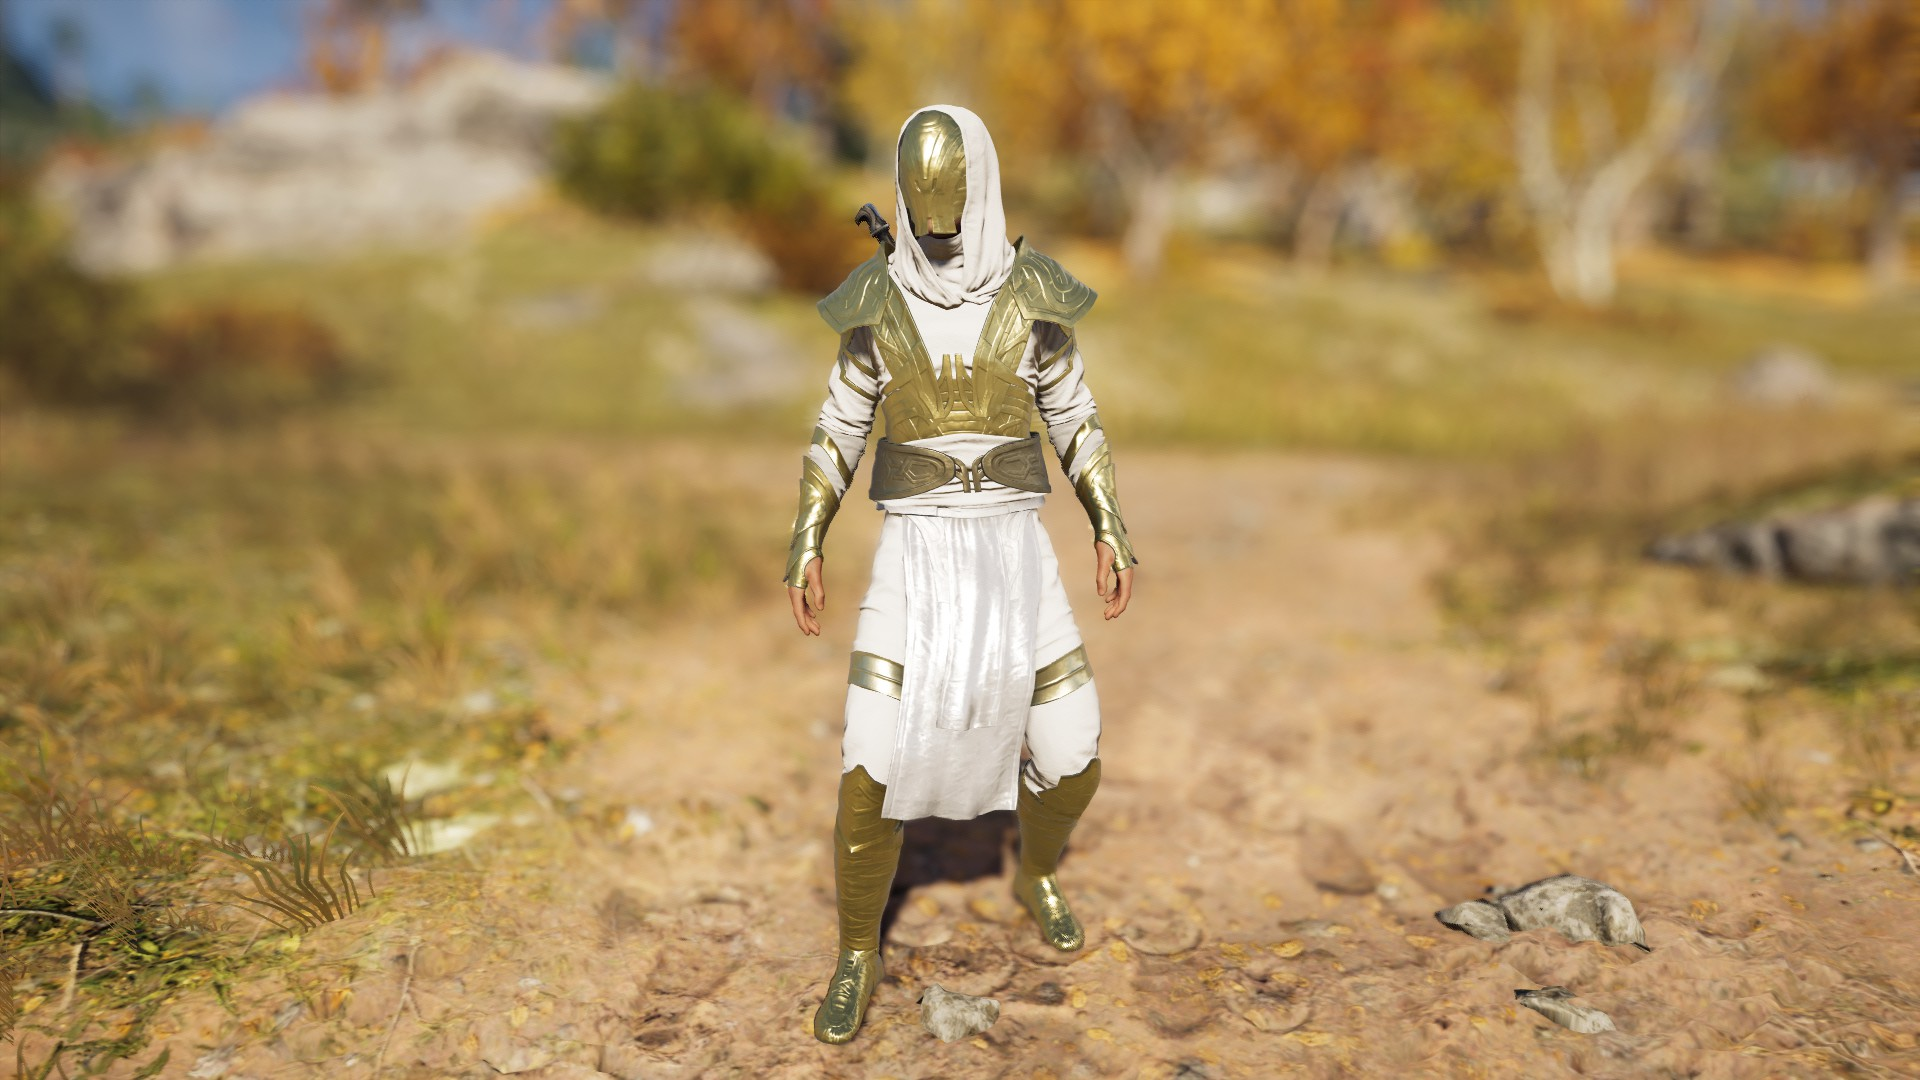 Odyssey at Assassins Creed Odyssey Nexus - Mods and Community